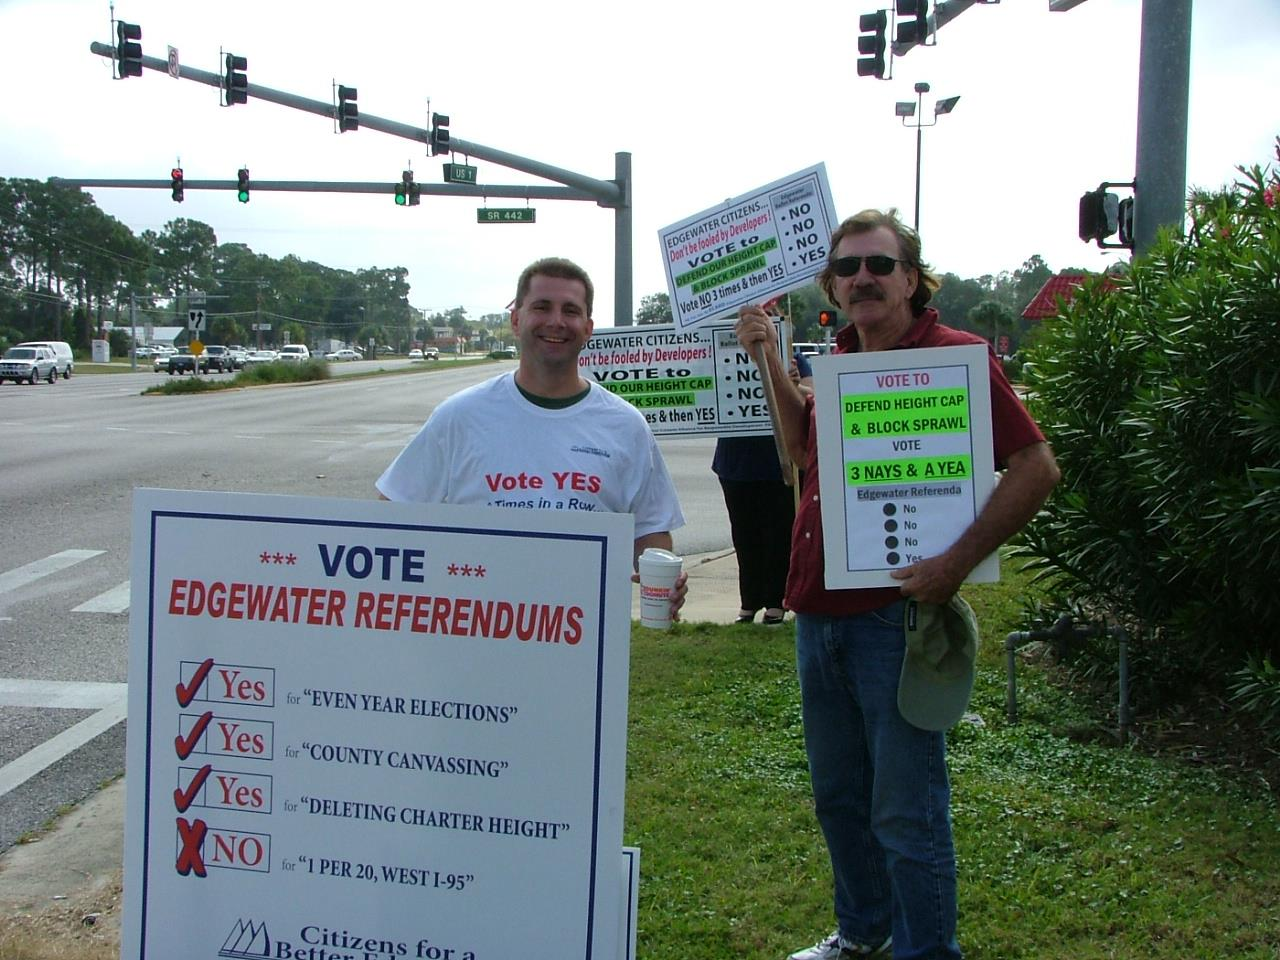 Citizens for a Better Edgewater Coalition